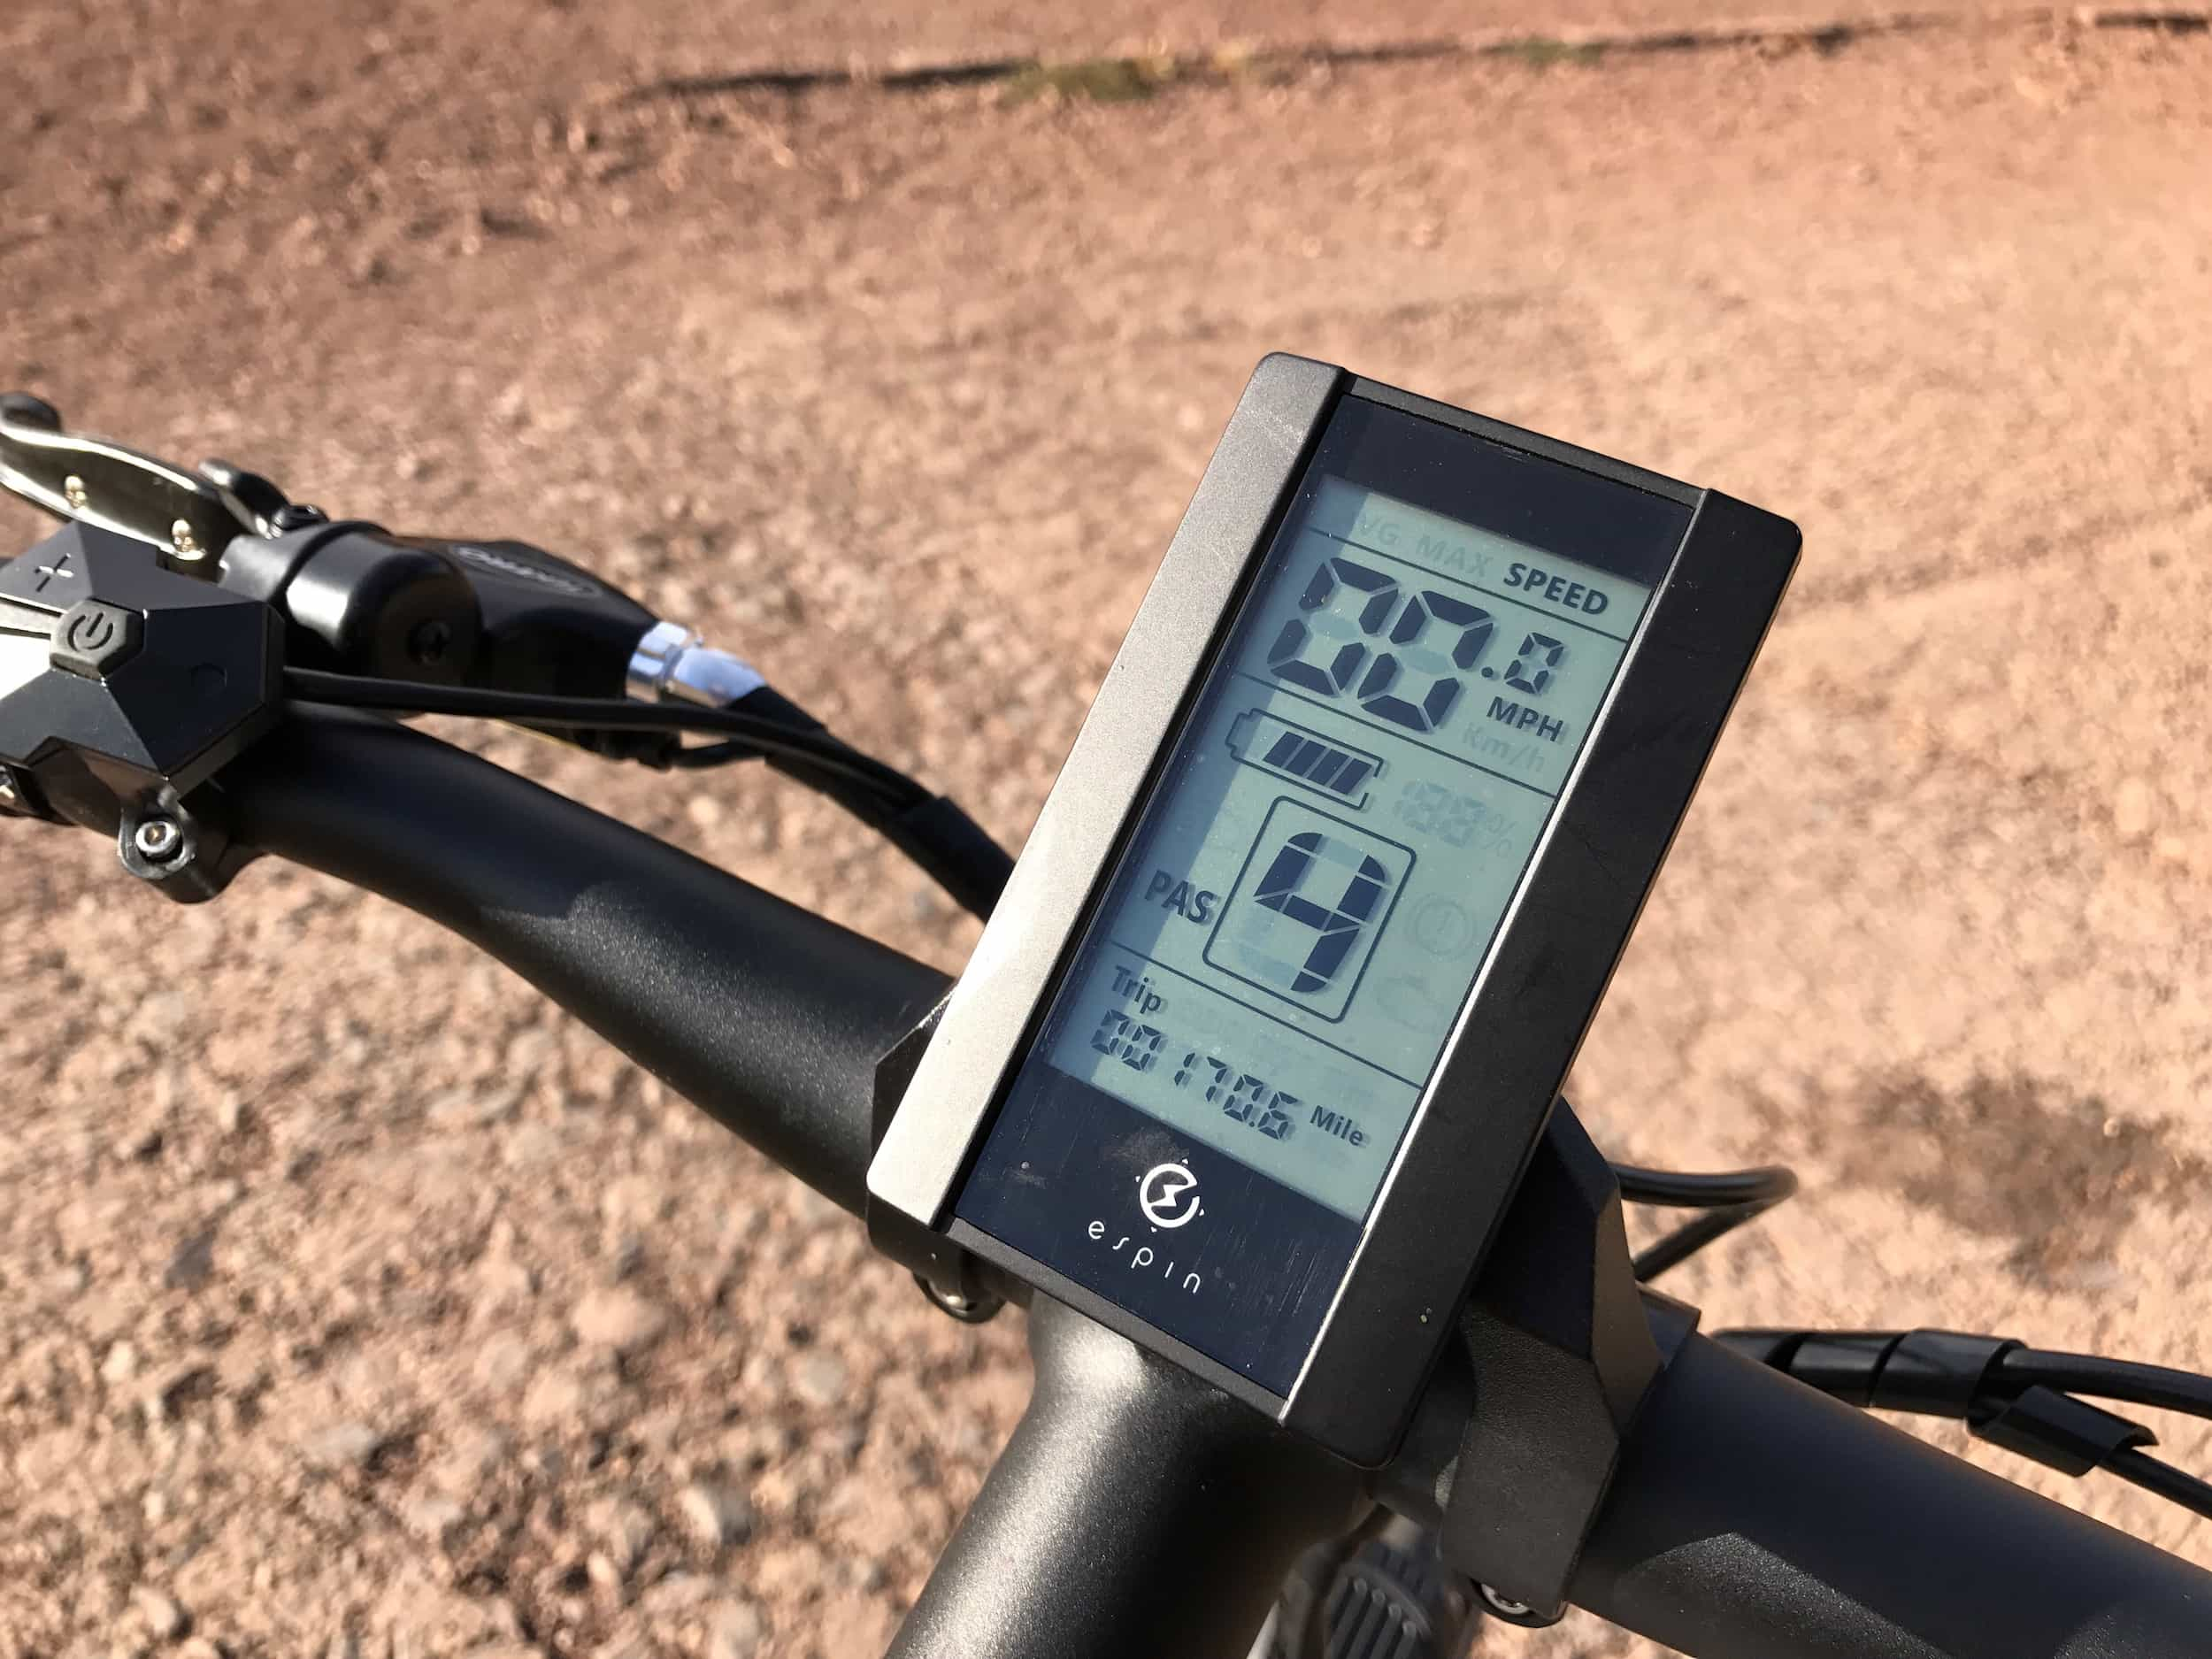 Espin Sport electric bike LCD display